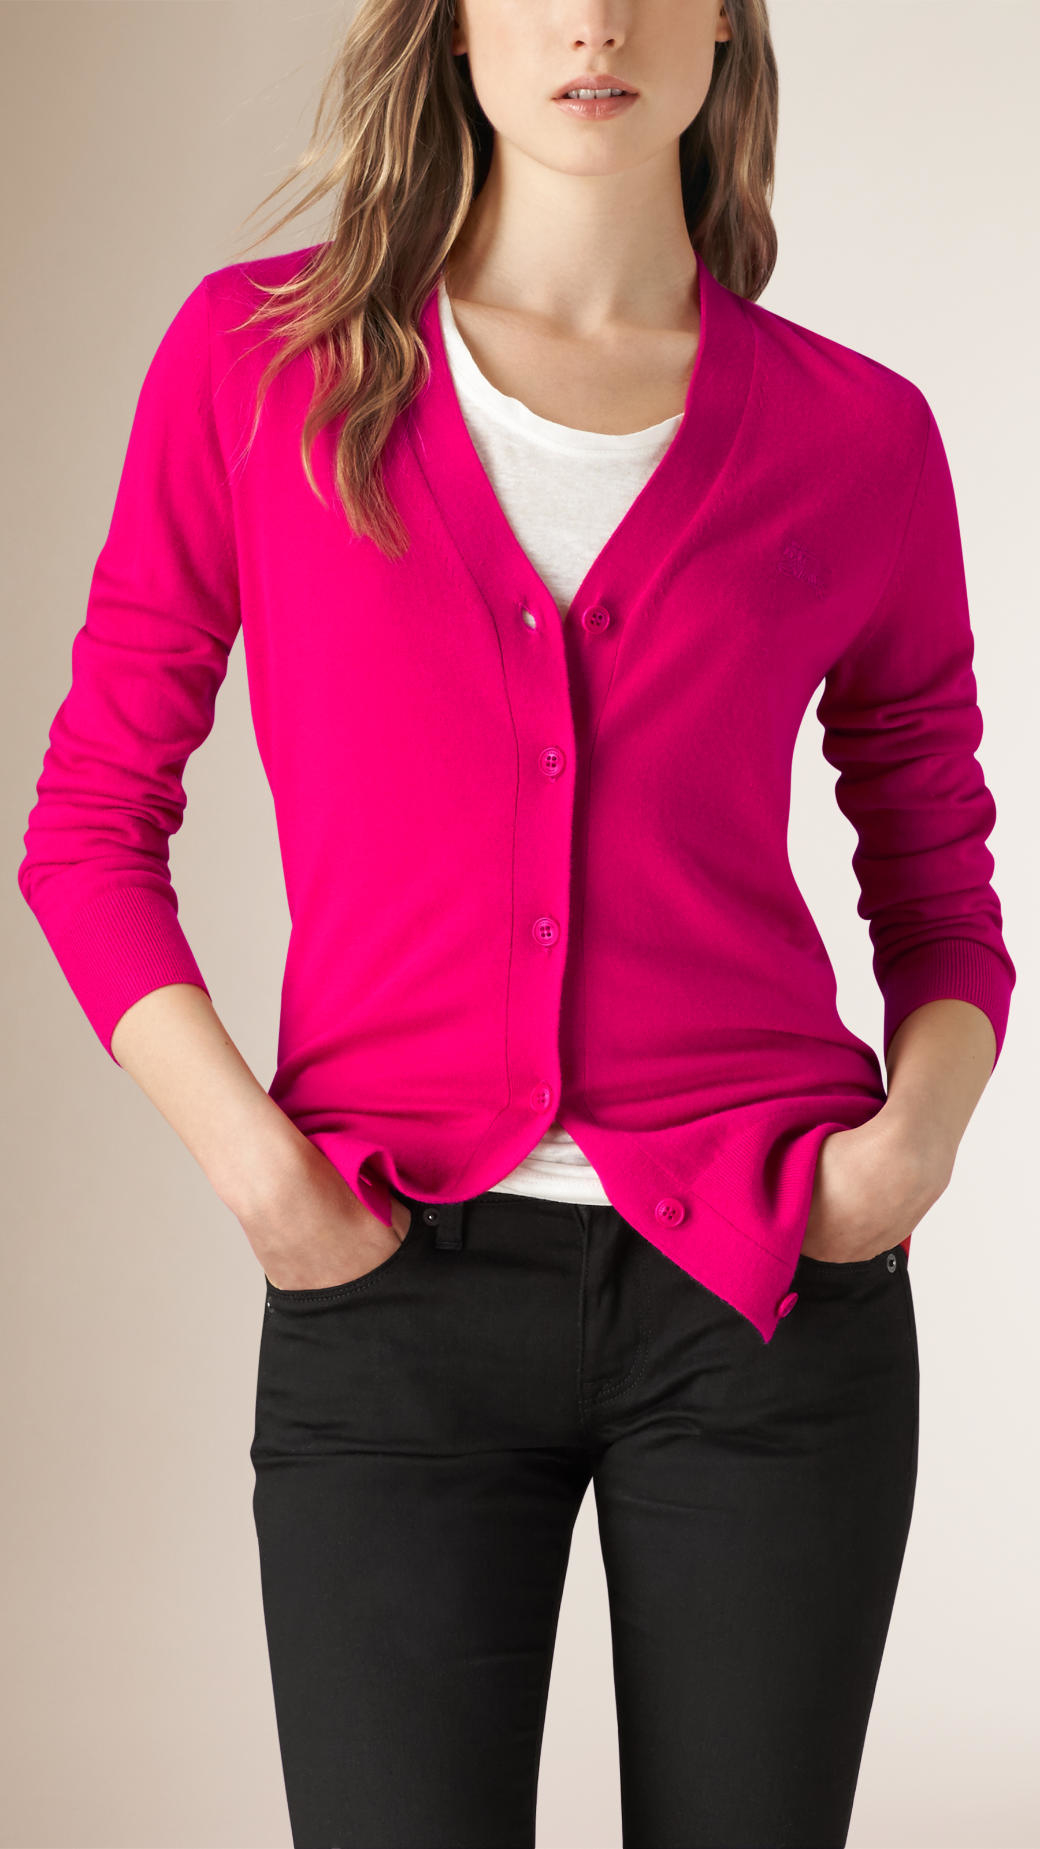 Burberry V-neck Cashmere Cardigan in Pink | Lyst